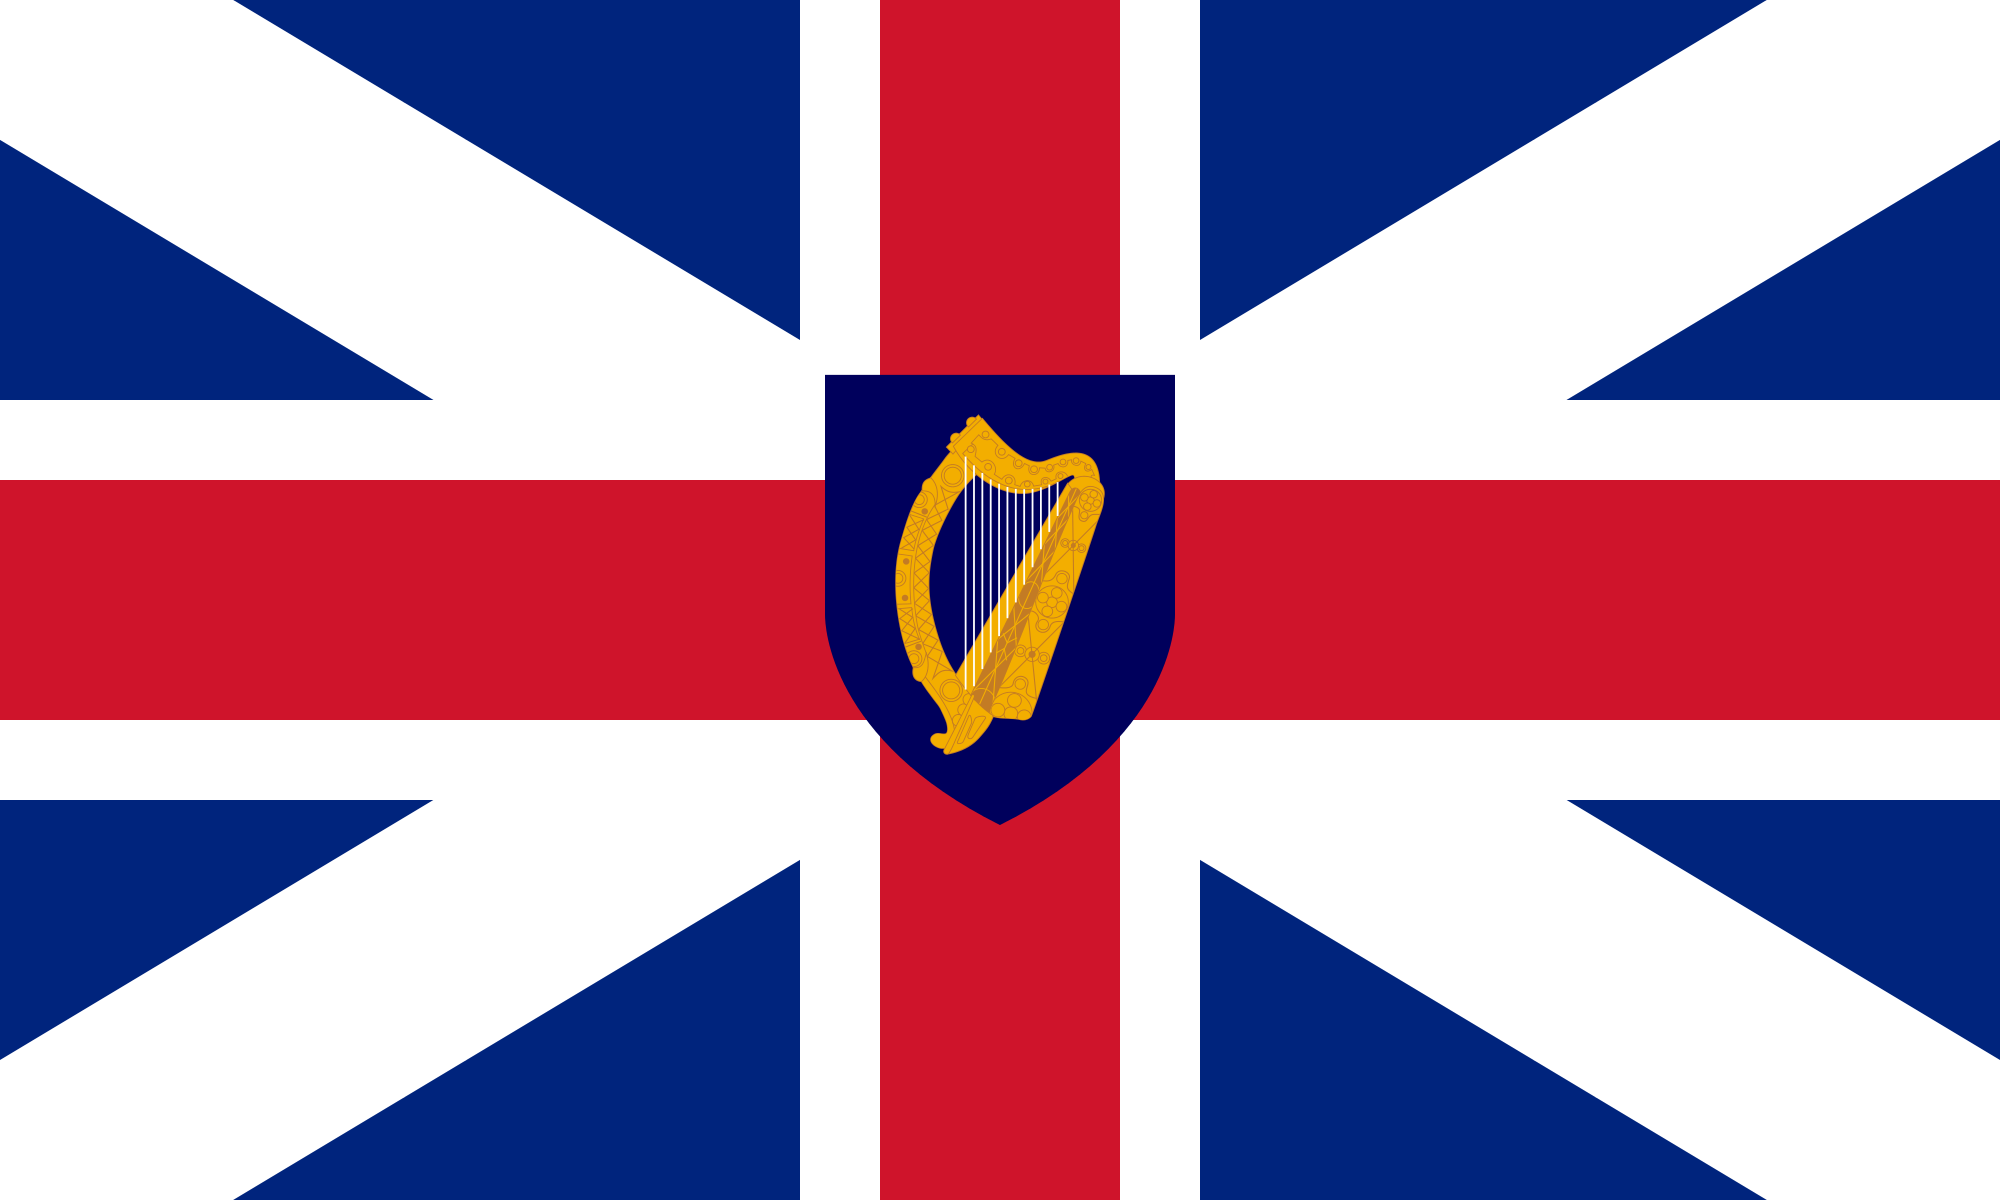 Commonwealth Of England Dark Blue Background Union Jack Flag